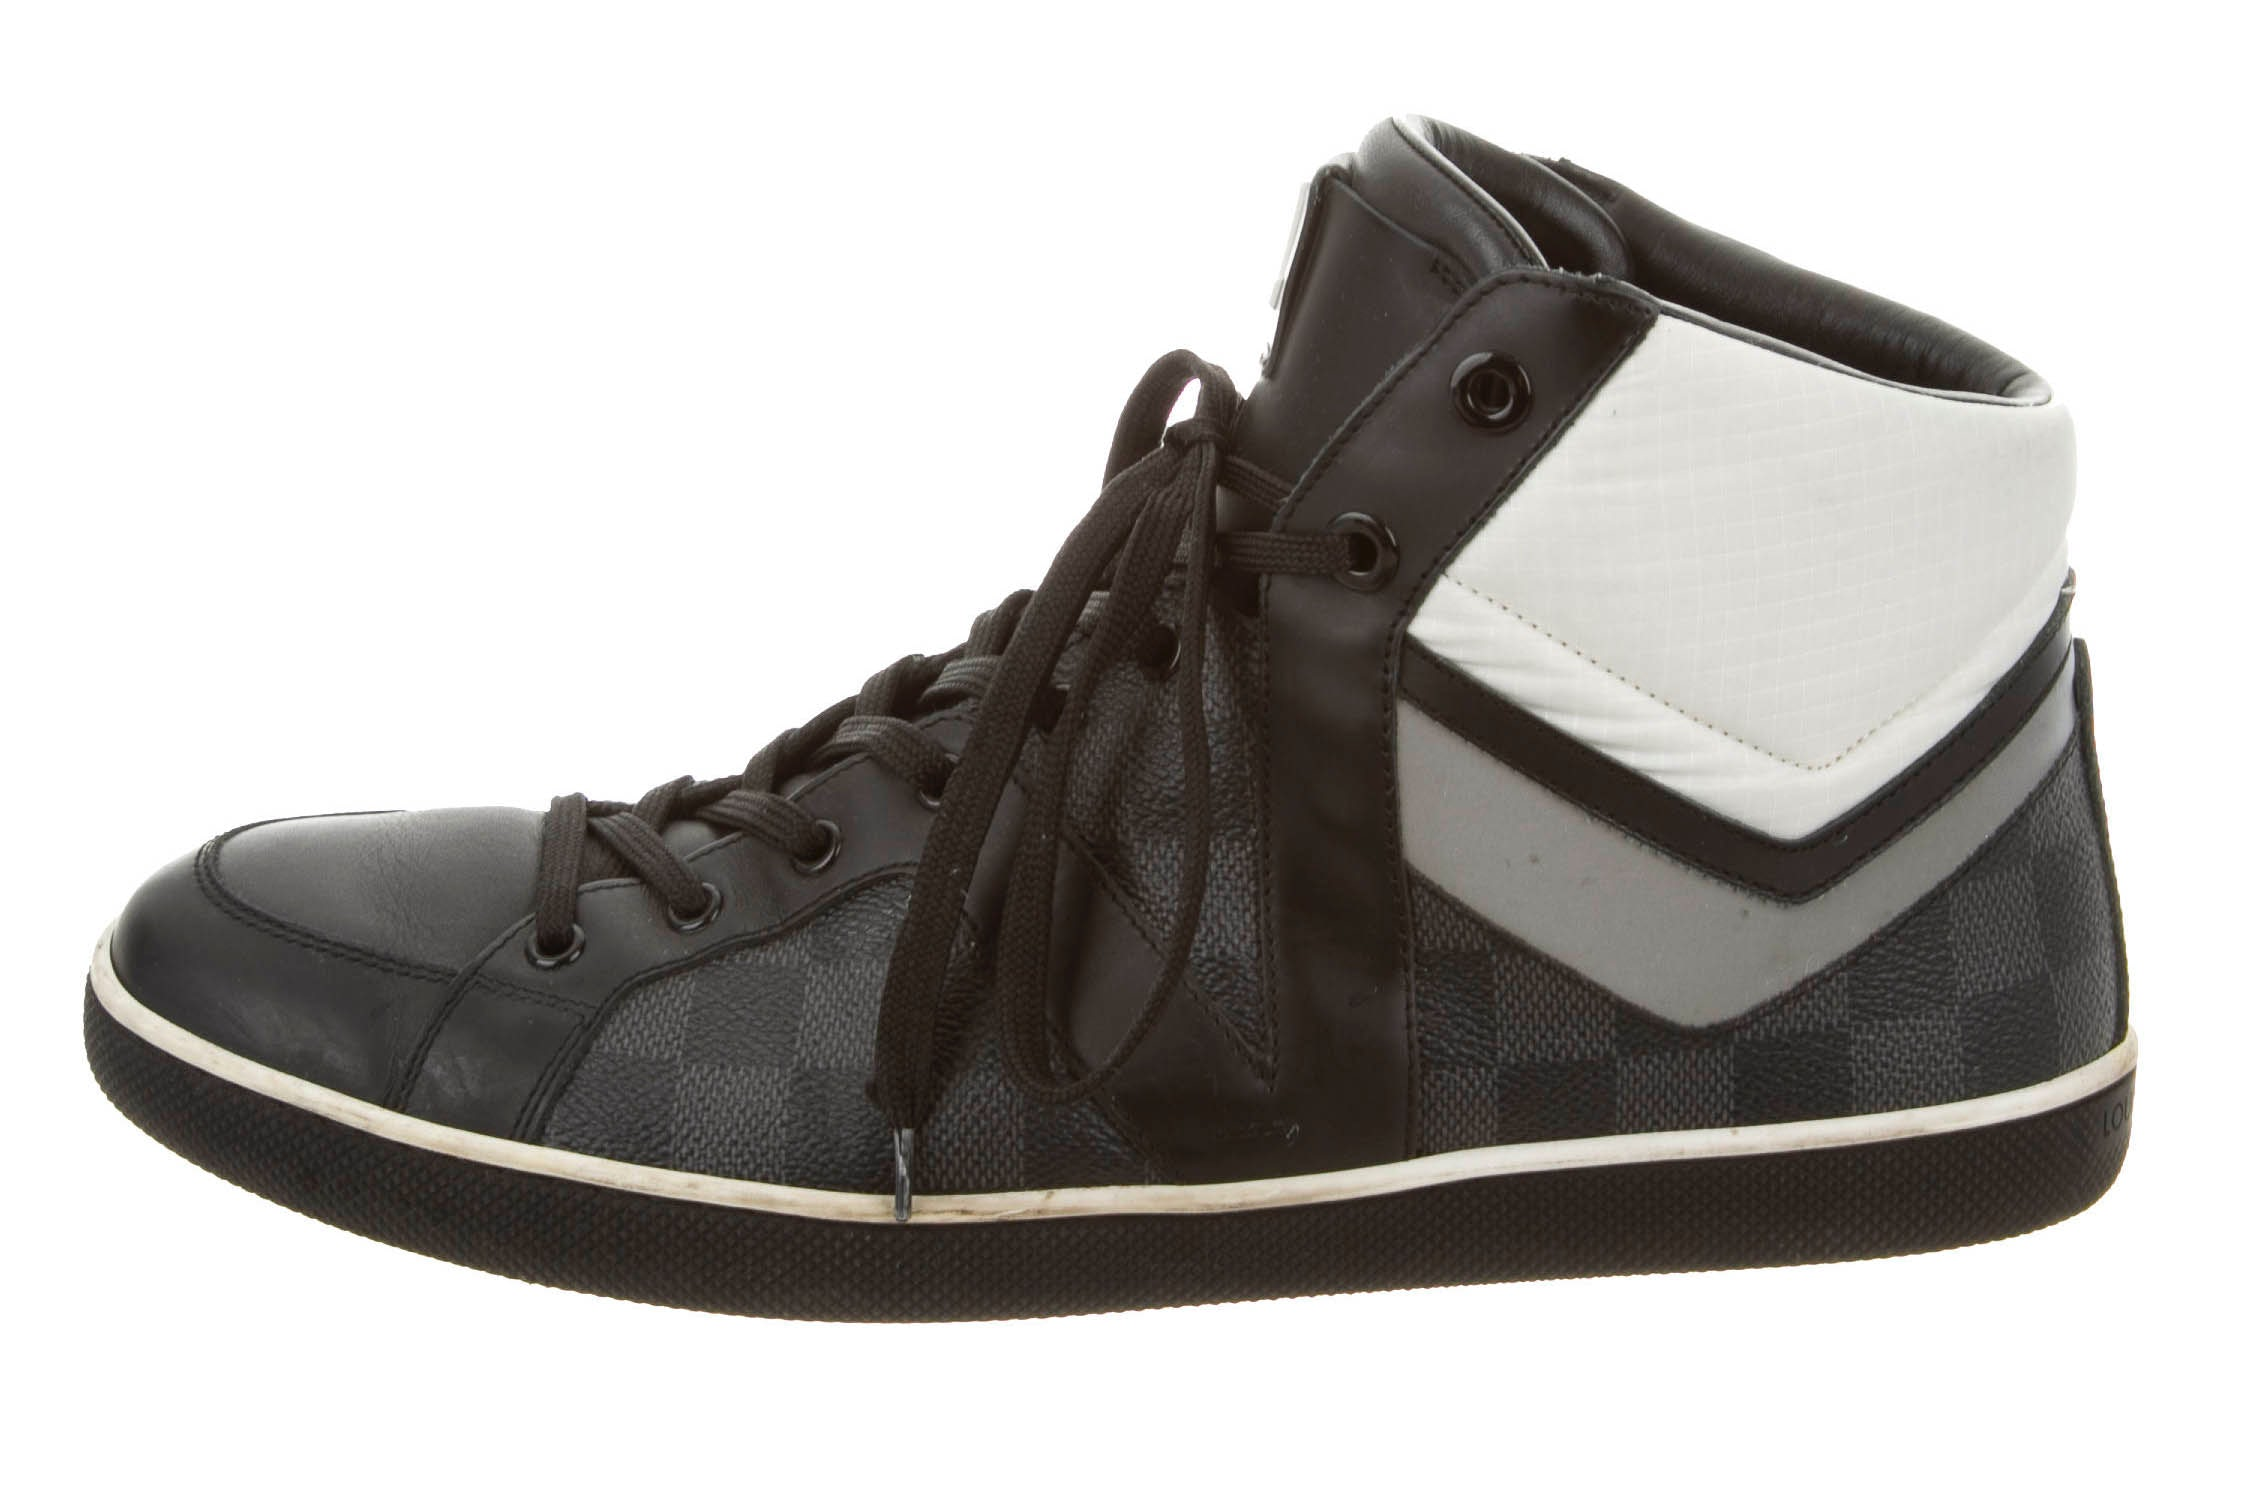 The Louis Vuitton Damier high-top sneaker | Source: The RealReal